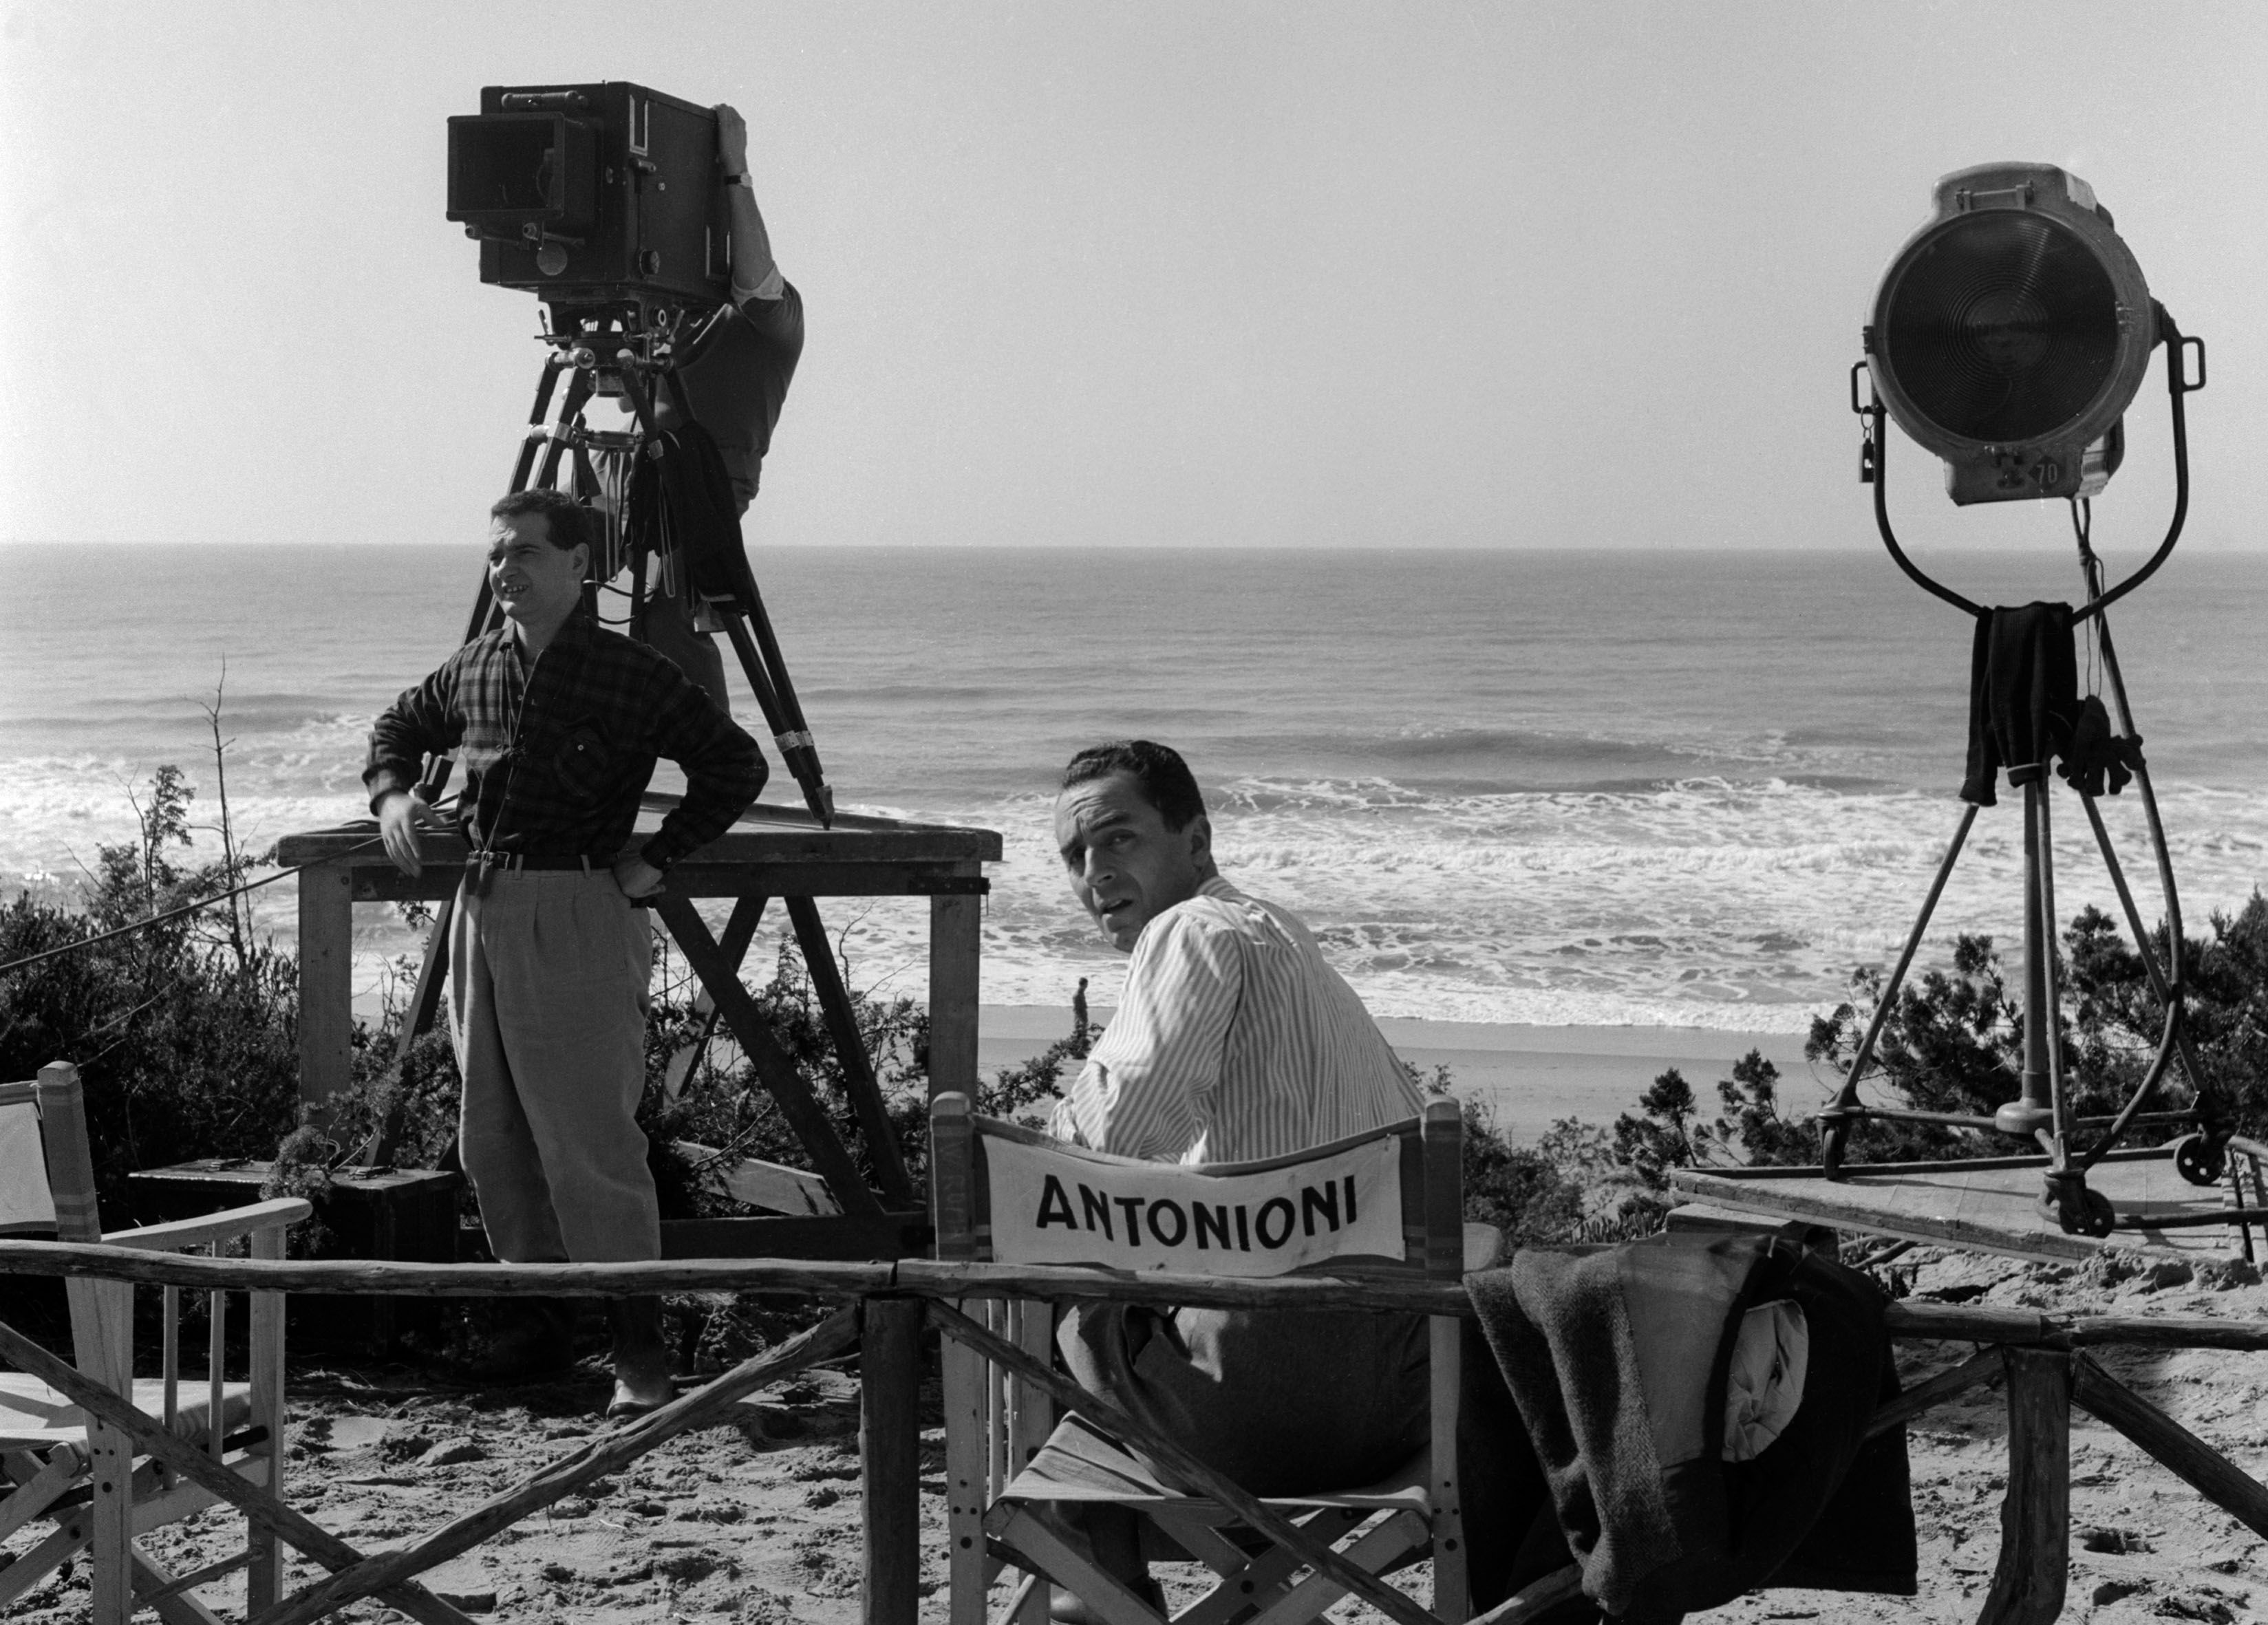 cinema-set-antonioni-2018